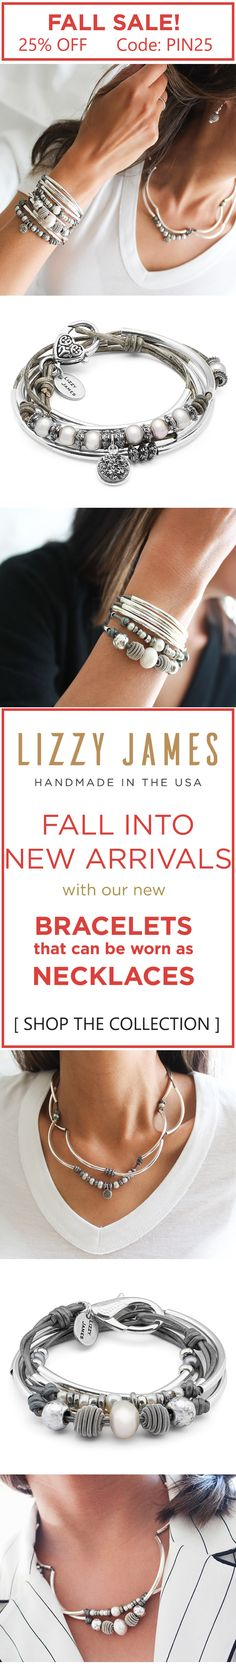 Lizzy James' Fall 2017 unveiling of NEW ARRIVALS! Get 25% OFF with CODE - PIN25 Plus Free Shipping during our Fall Sale. Featuring wrap bracelets that can be worn as necklaces.  Available in 30+ leather colors to choose from.   Handmade in the USA and cur